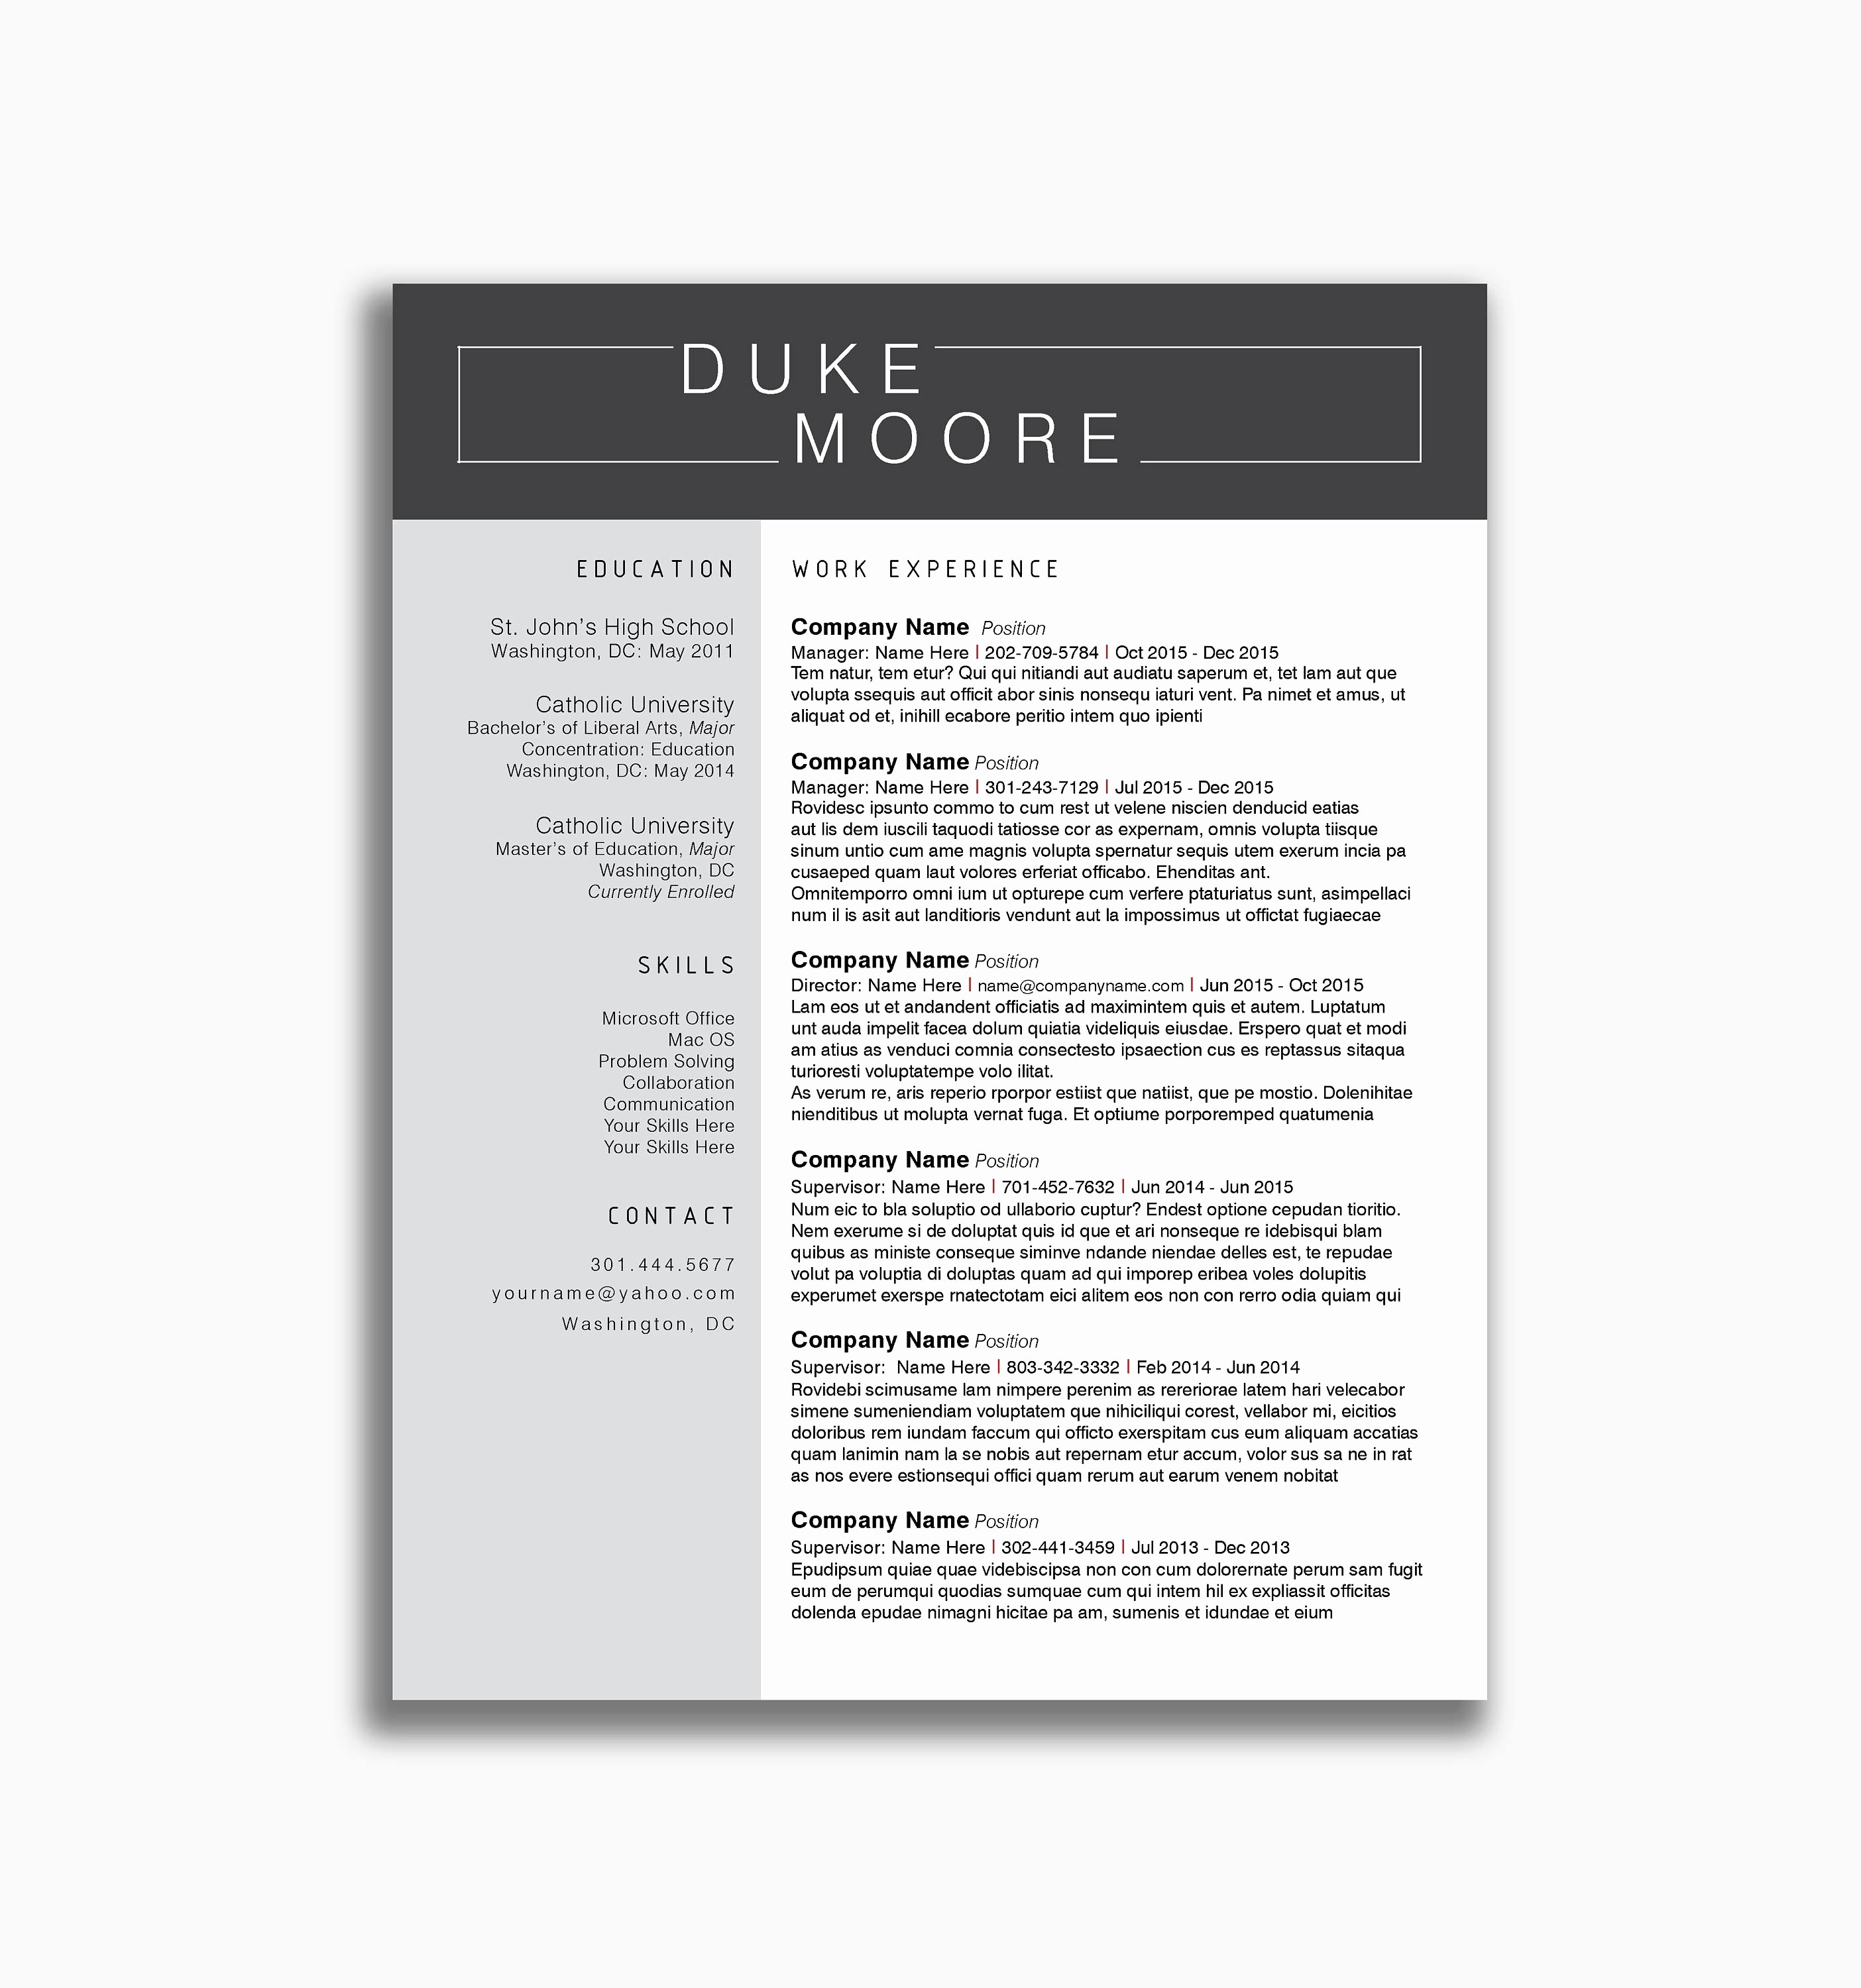 Resume Template for social Worker - Awesome social Work Resume Template Beautiful social Worker Resume